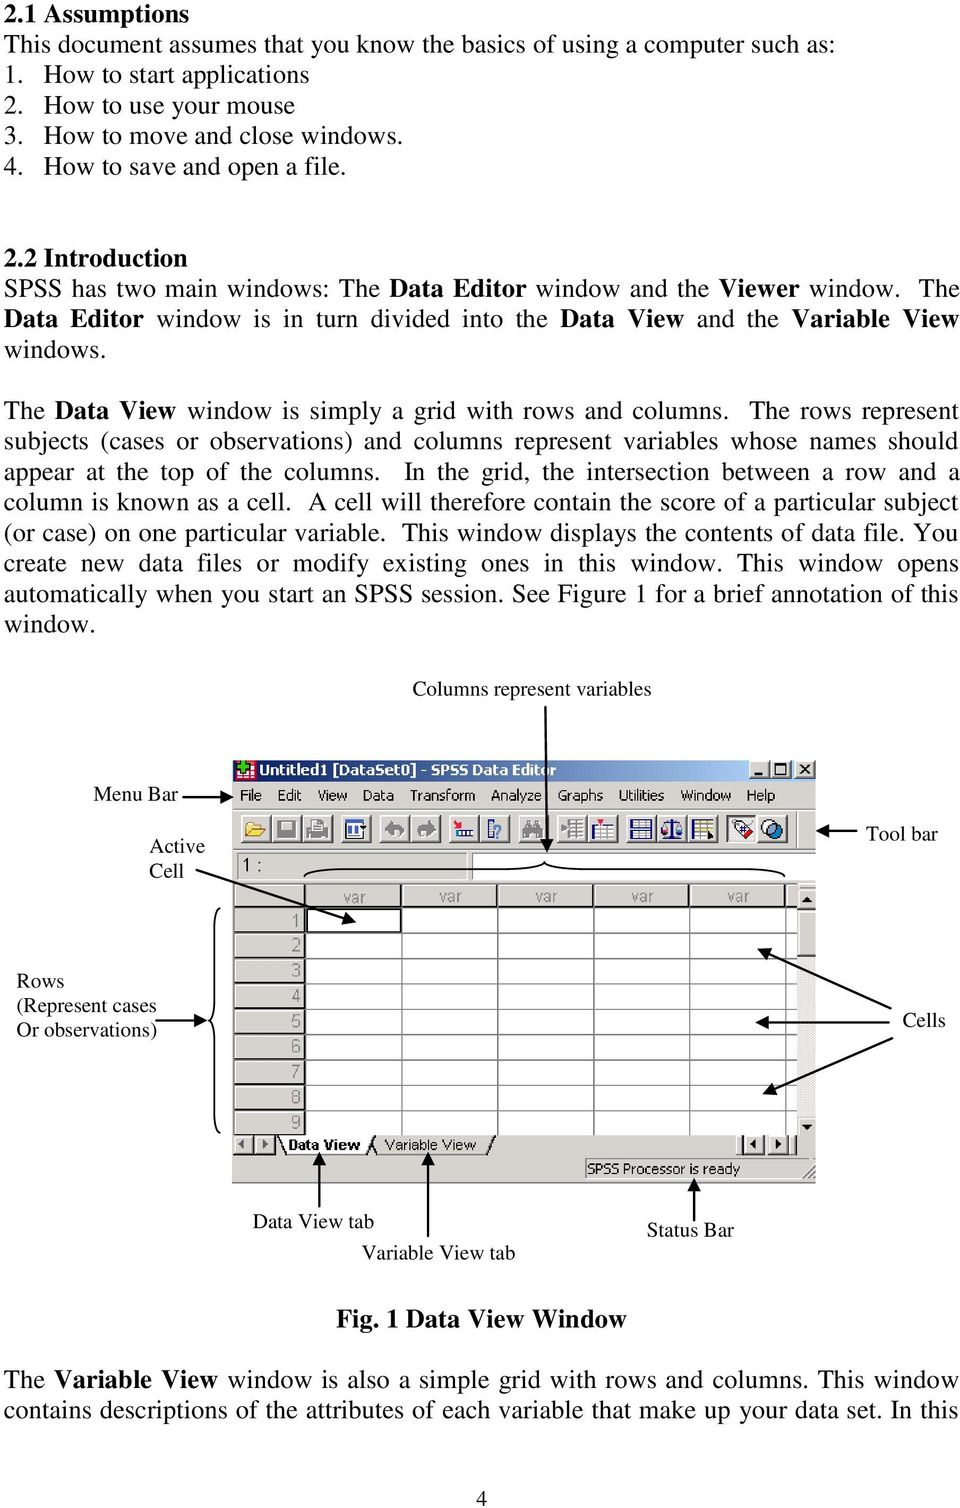 The Data Editor window is in turn divided into the Data View and the Variable View windows. The Data View window is simply a grid with rows and columns.